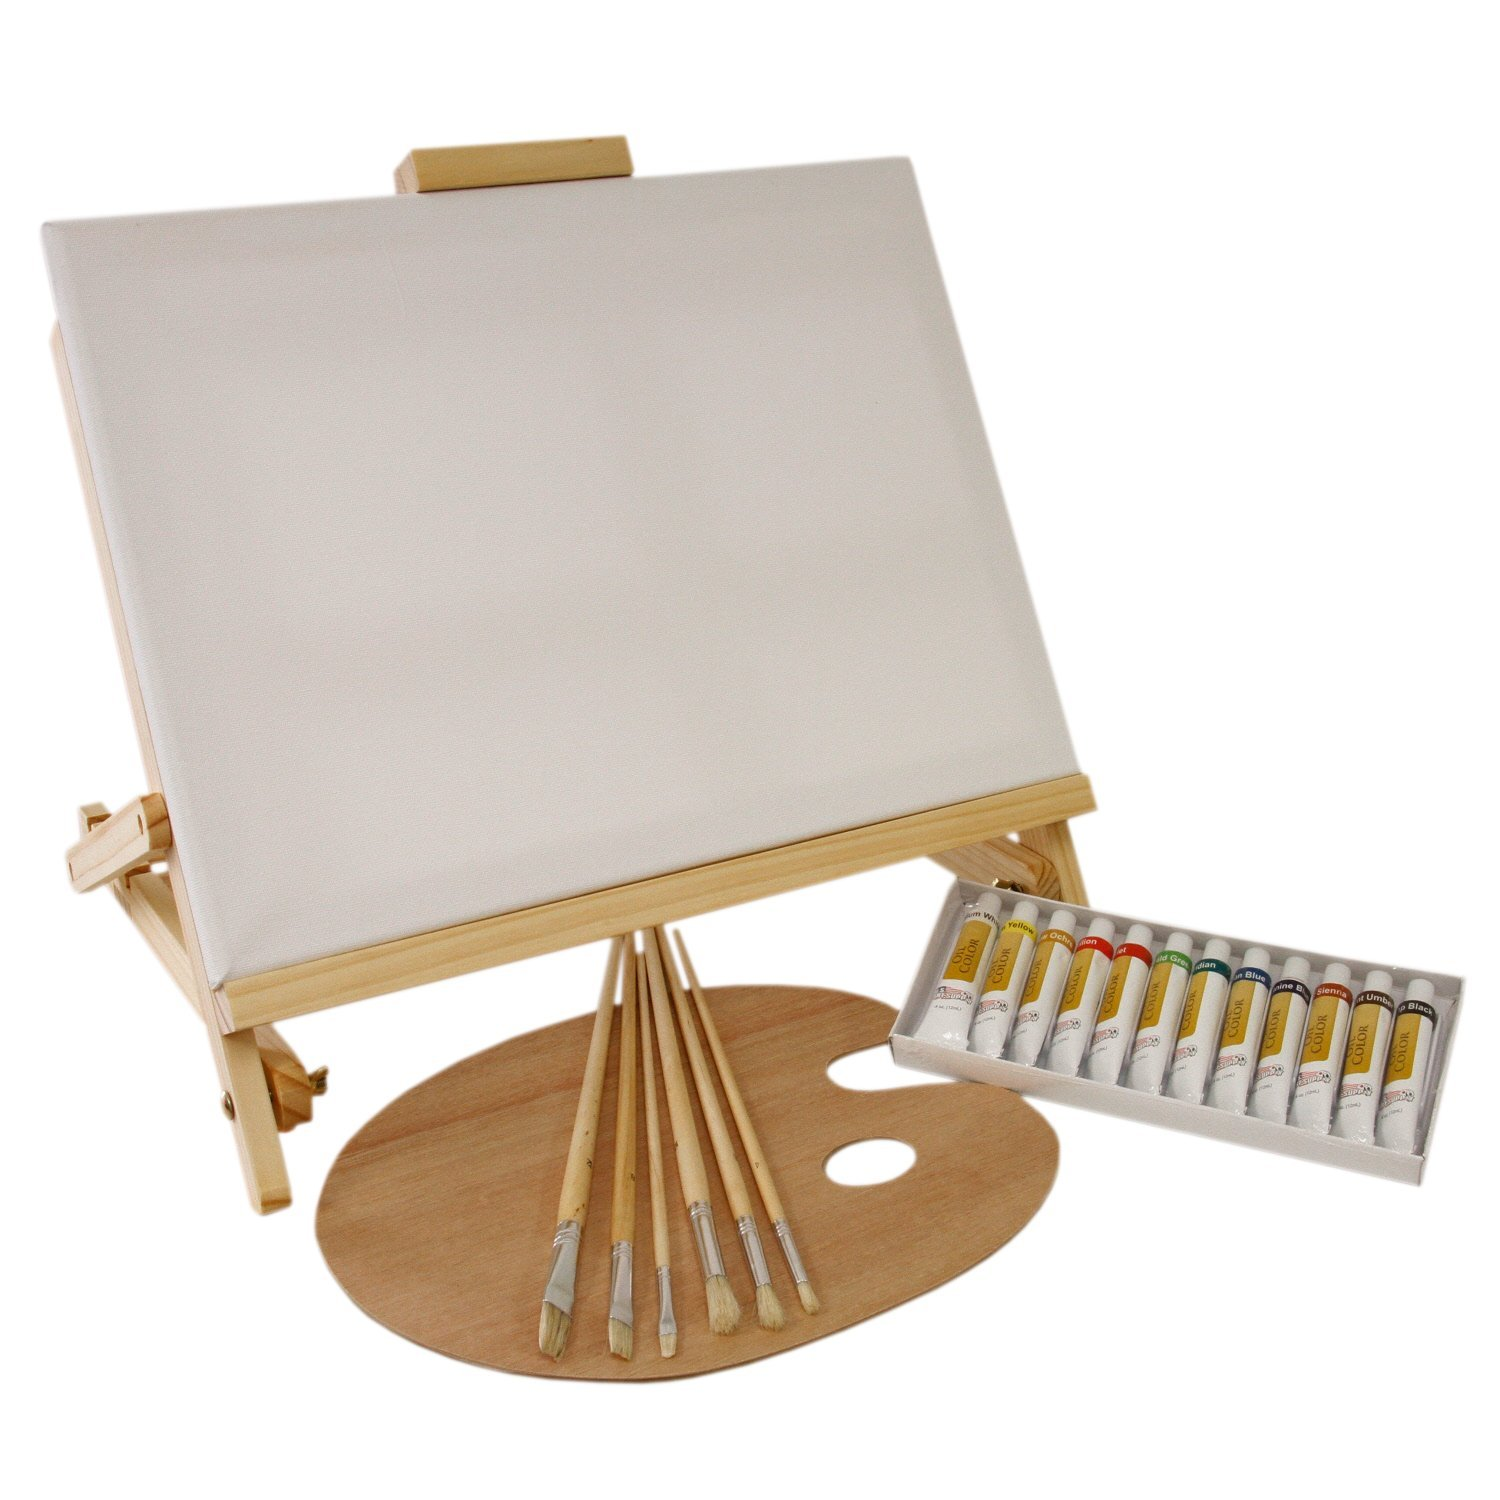 Us art supply 21 piece oil painting set with table easel for Homedepot colorsmartbybehr com paintstore